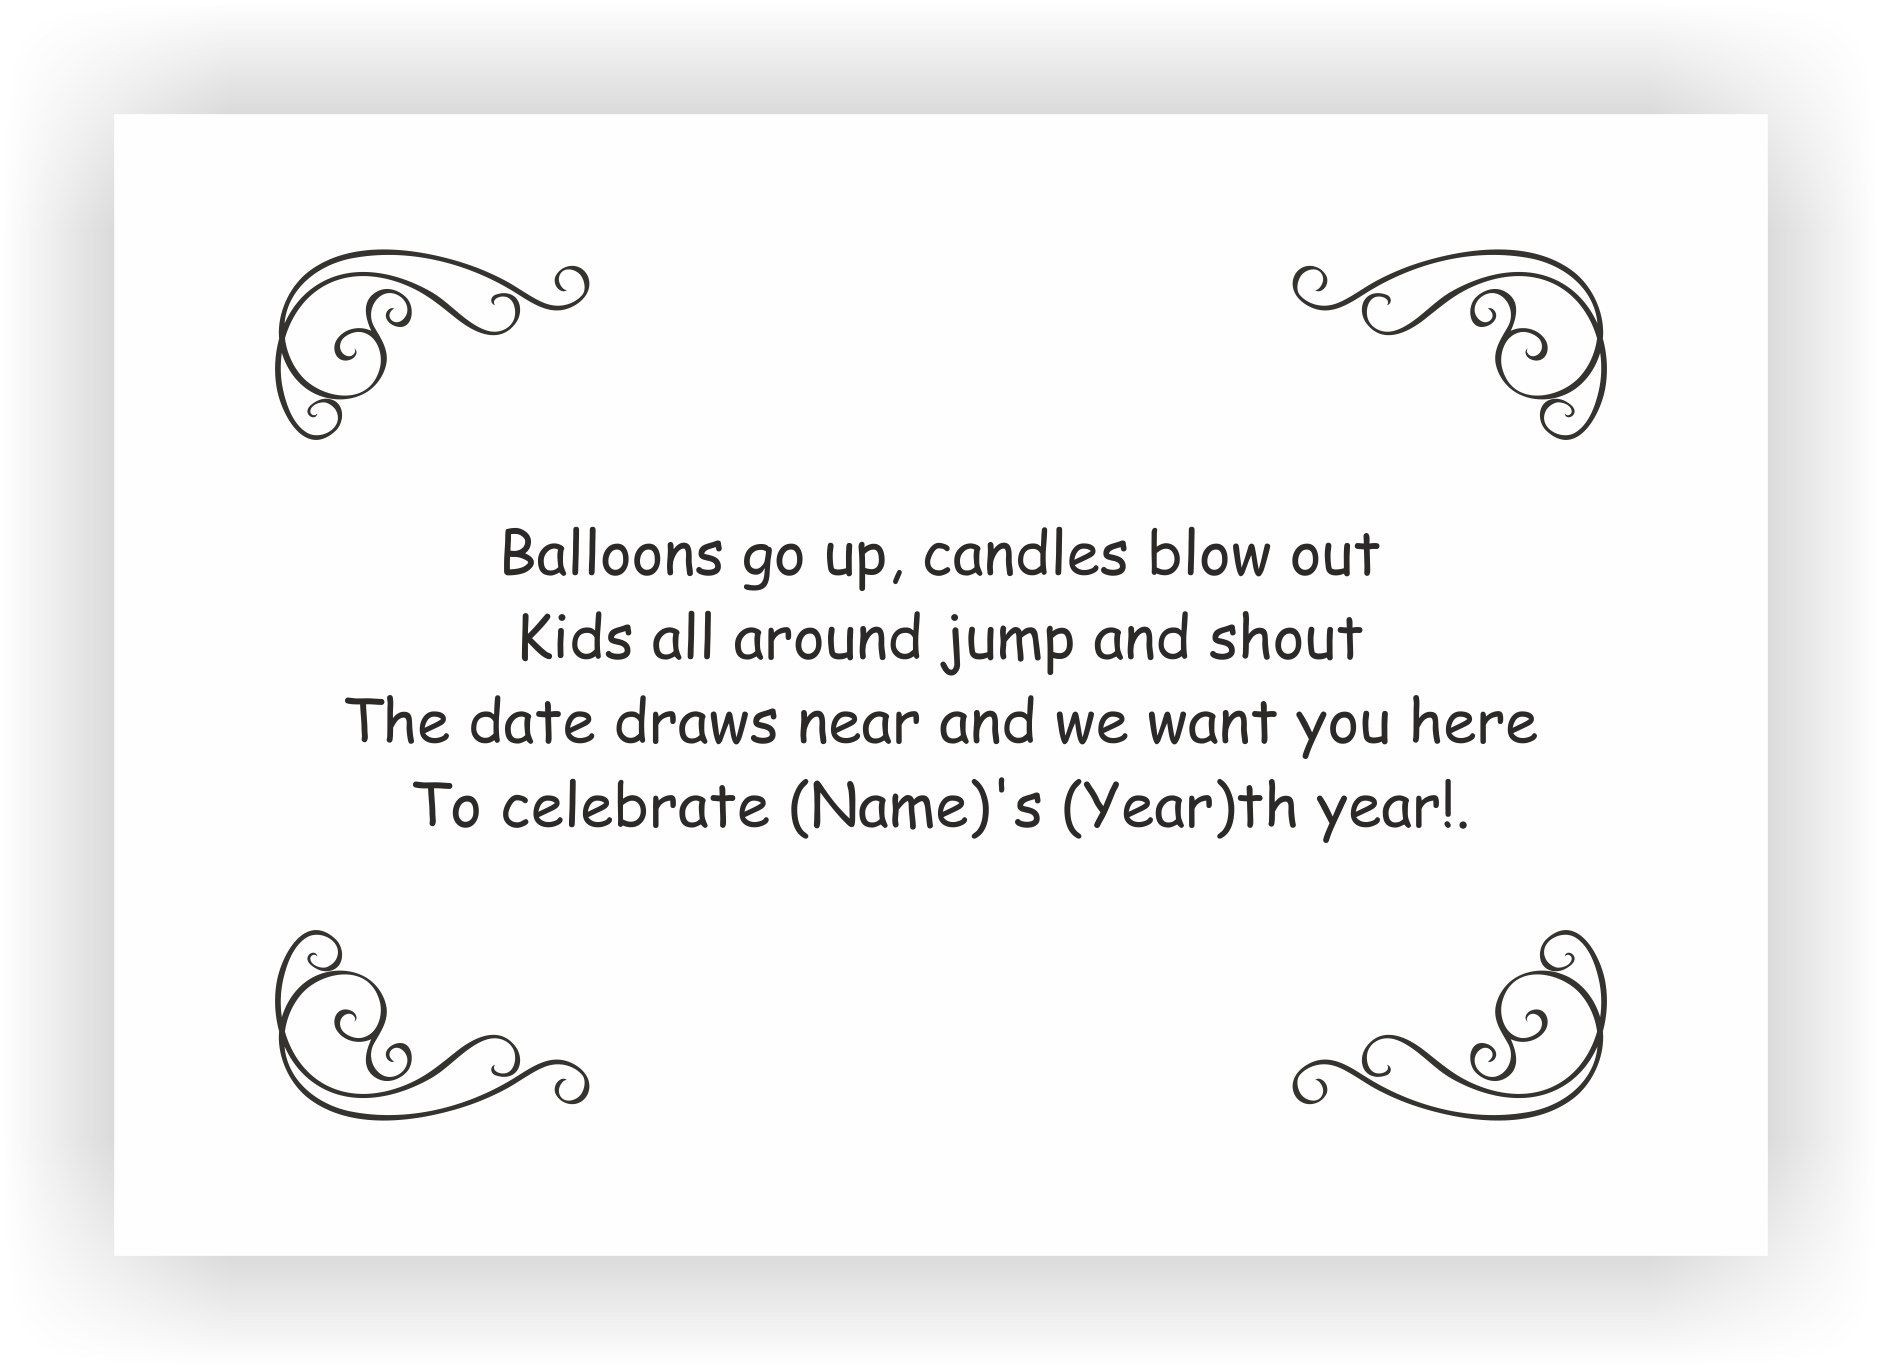 Best ideas about Birthday Party Invitation Message . Save or Pin Birthday Party Invite Messages Now.